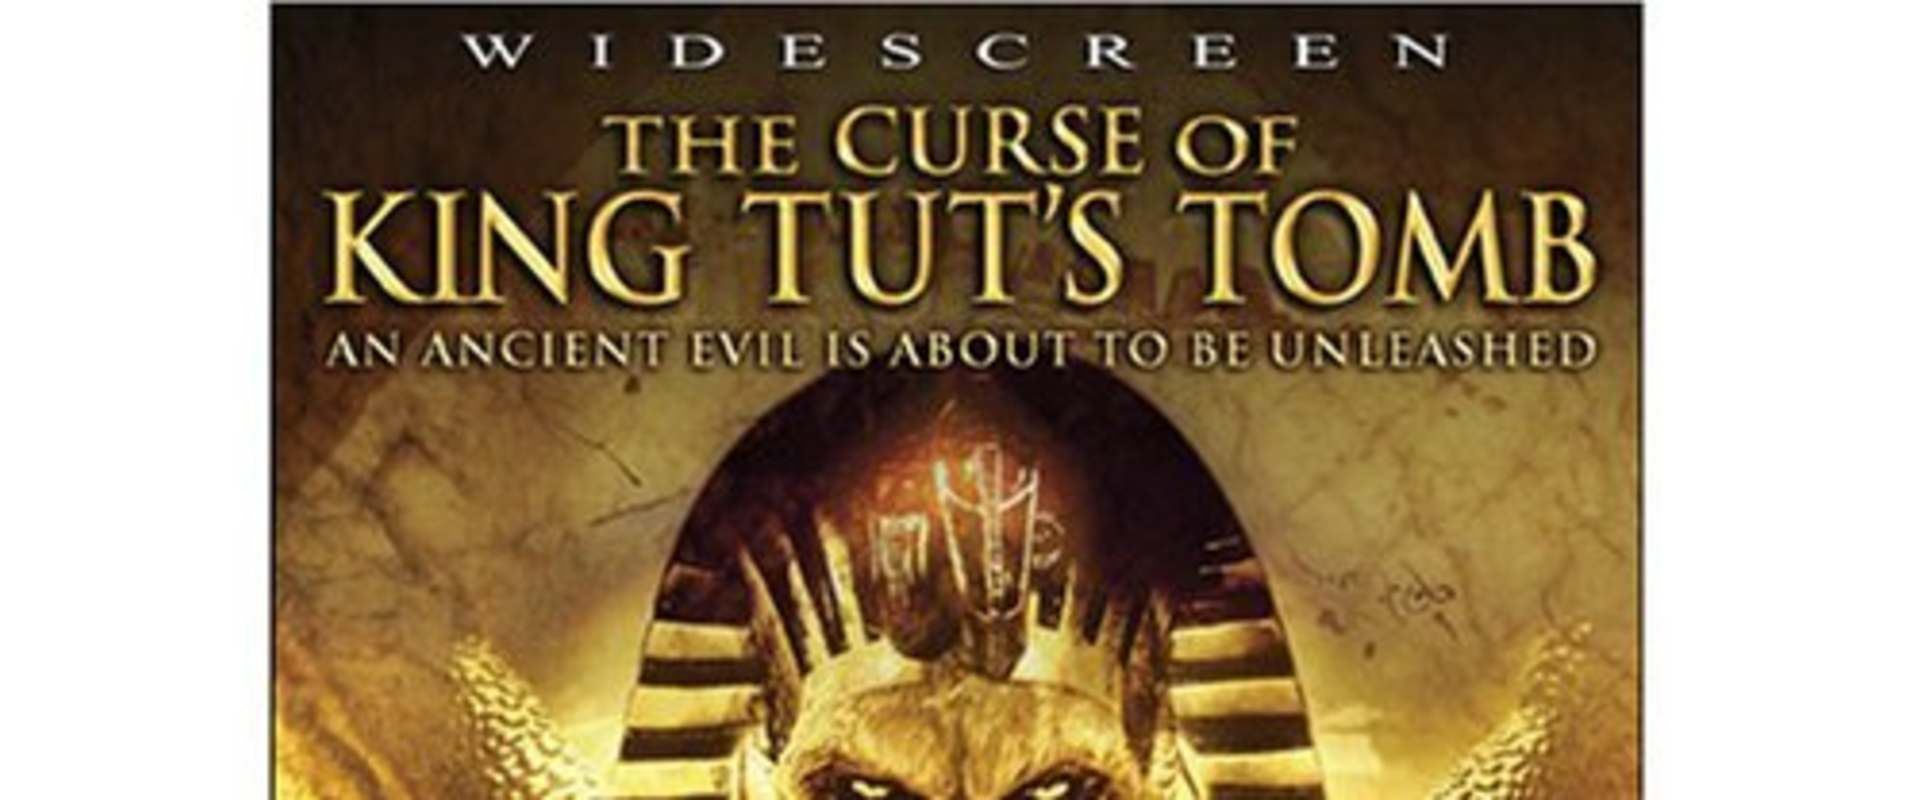 Watch The Curse Of King Tut's Tomb On Netflix Today